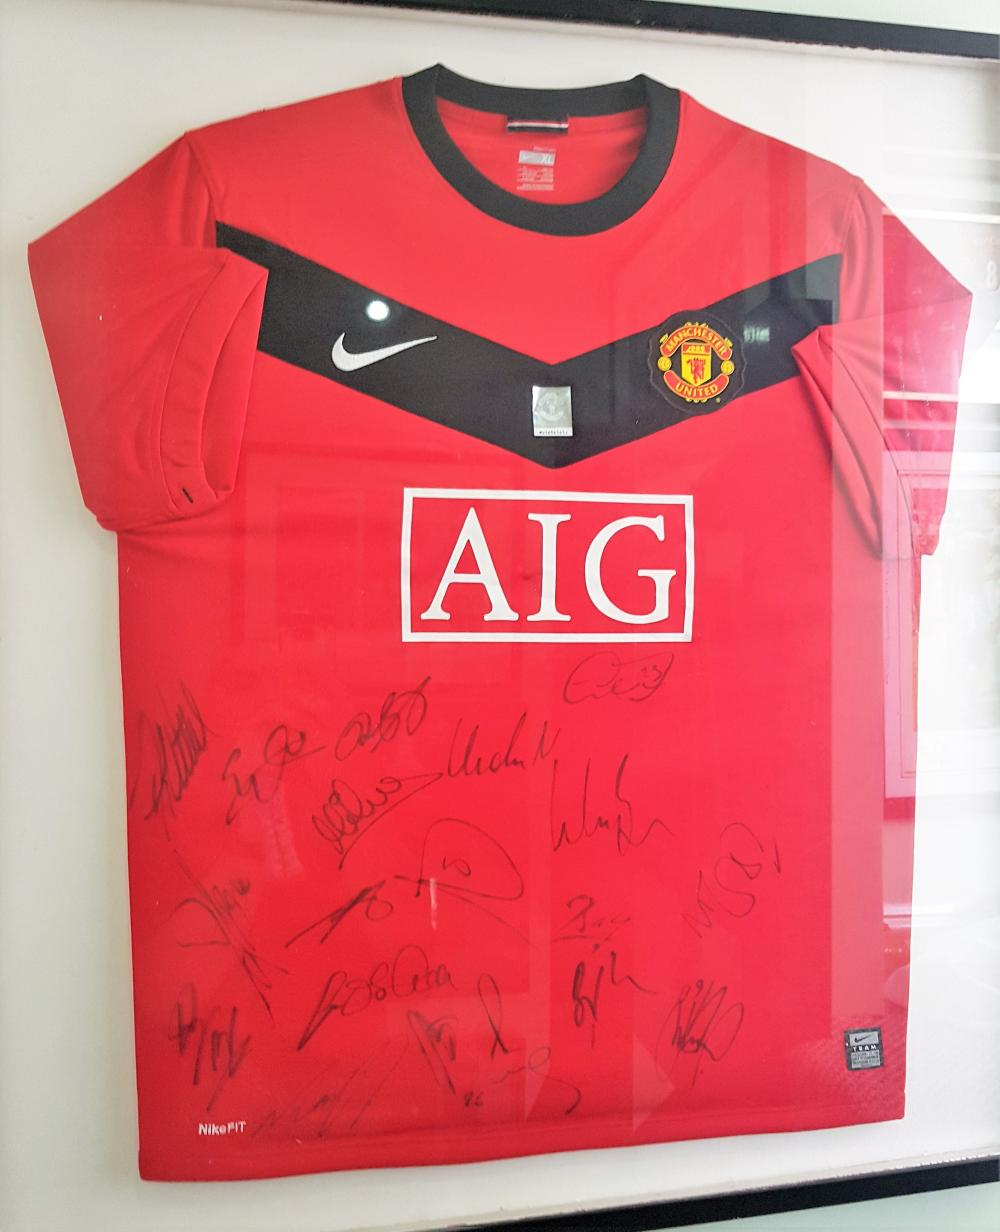 Lot 24 - Framed Manchester United Team Signed Shirt  Signed by Berbatov, Giggs, Carrick, Fletcher, Fabia De Silva, Evans, Kuszczak, Park